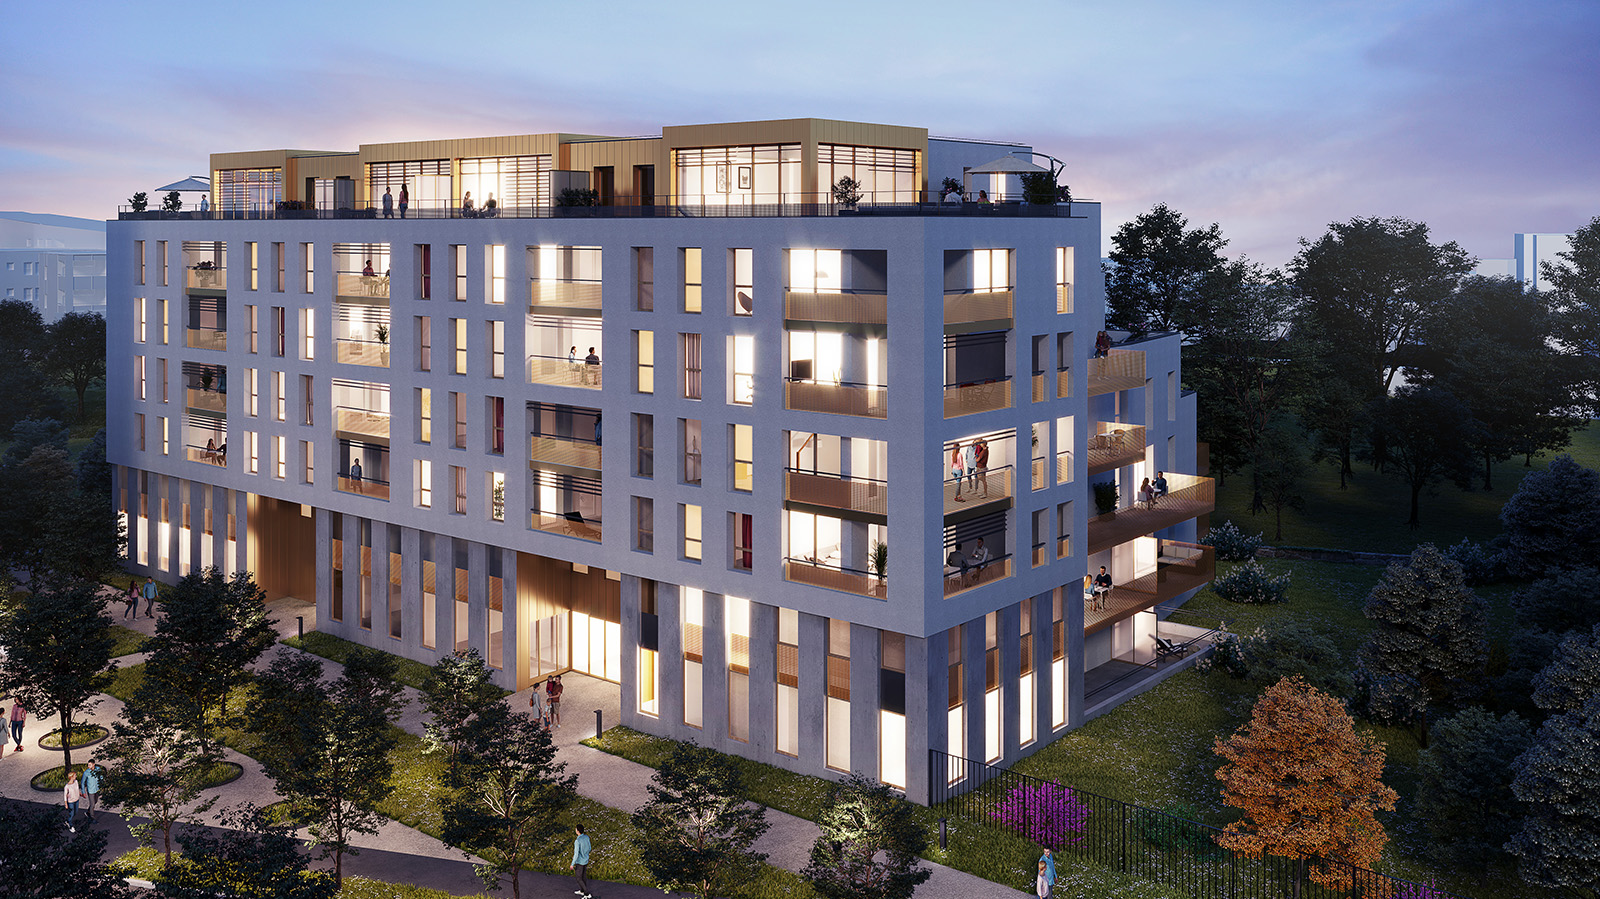 3b Immobilier